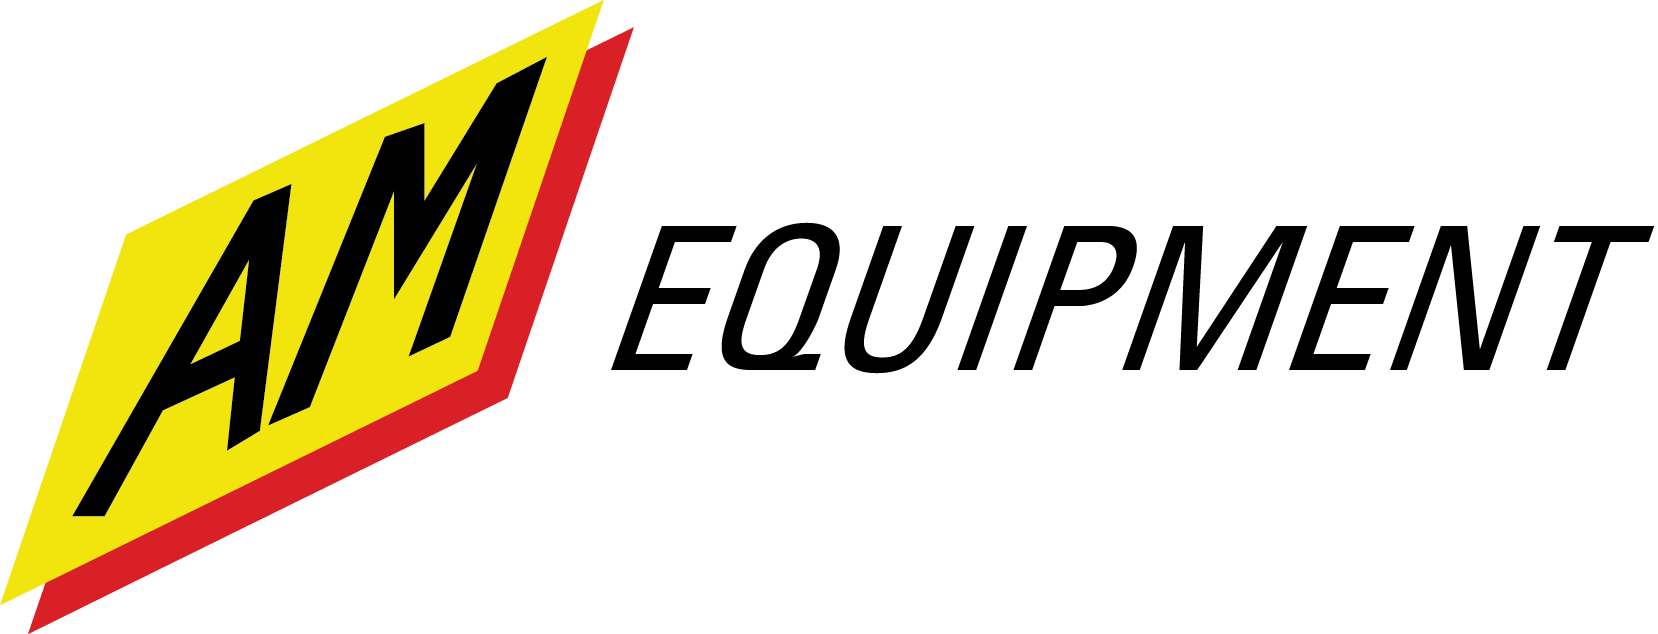 am-equipment-logo.png